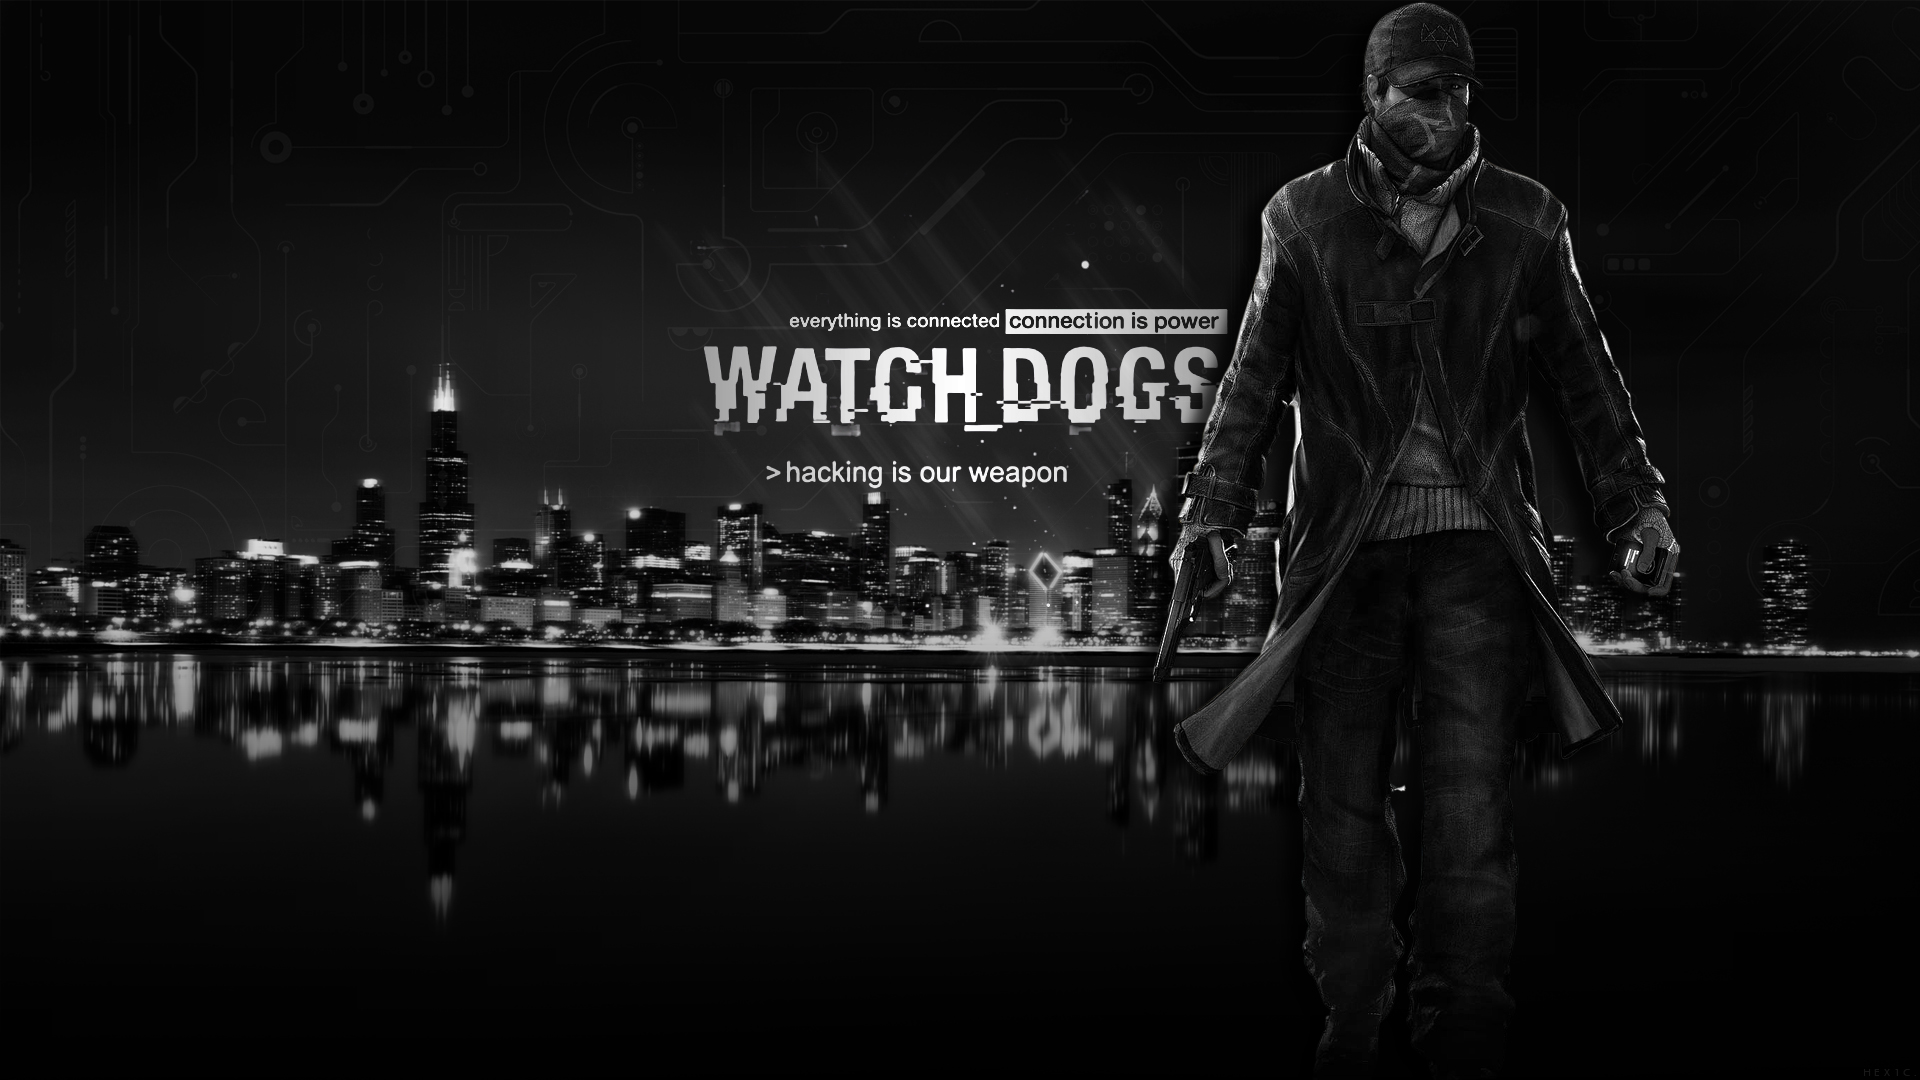 watch dogs wallpaper hd by solidcell customization wallpaper science